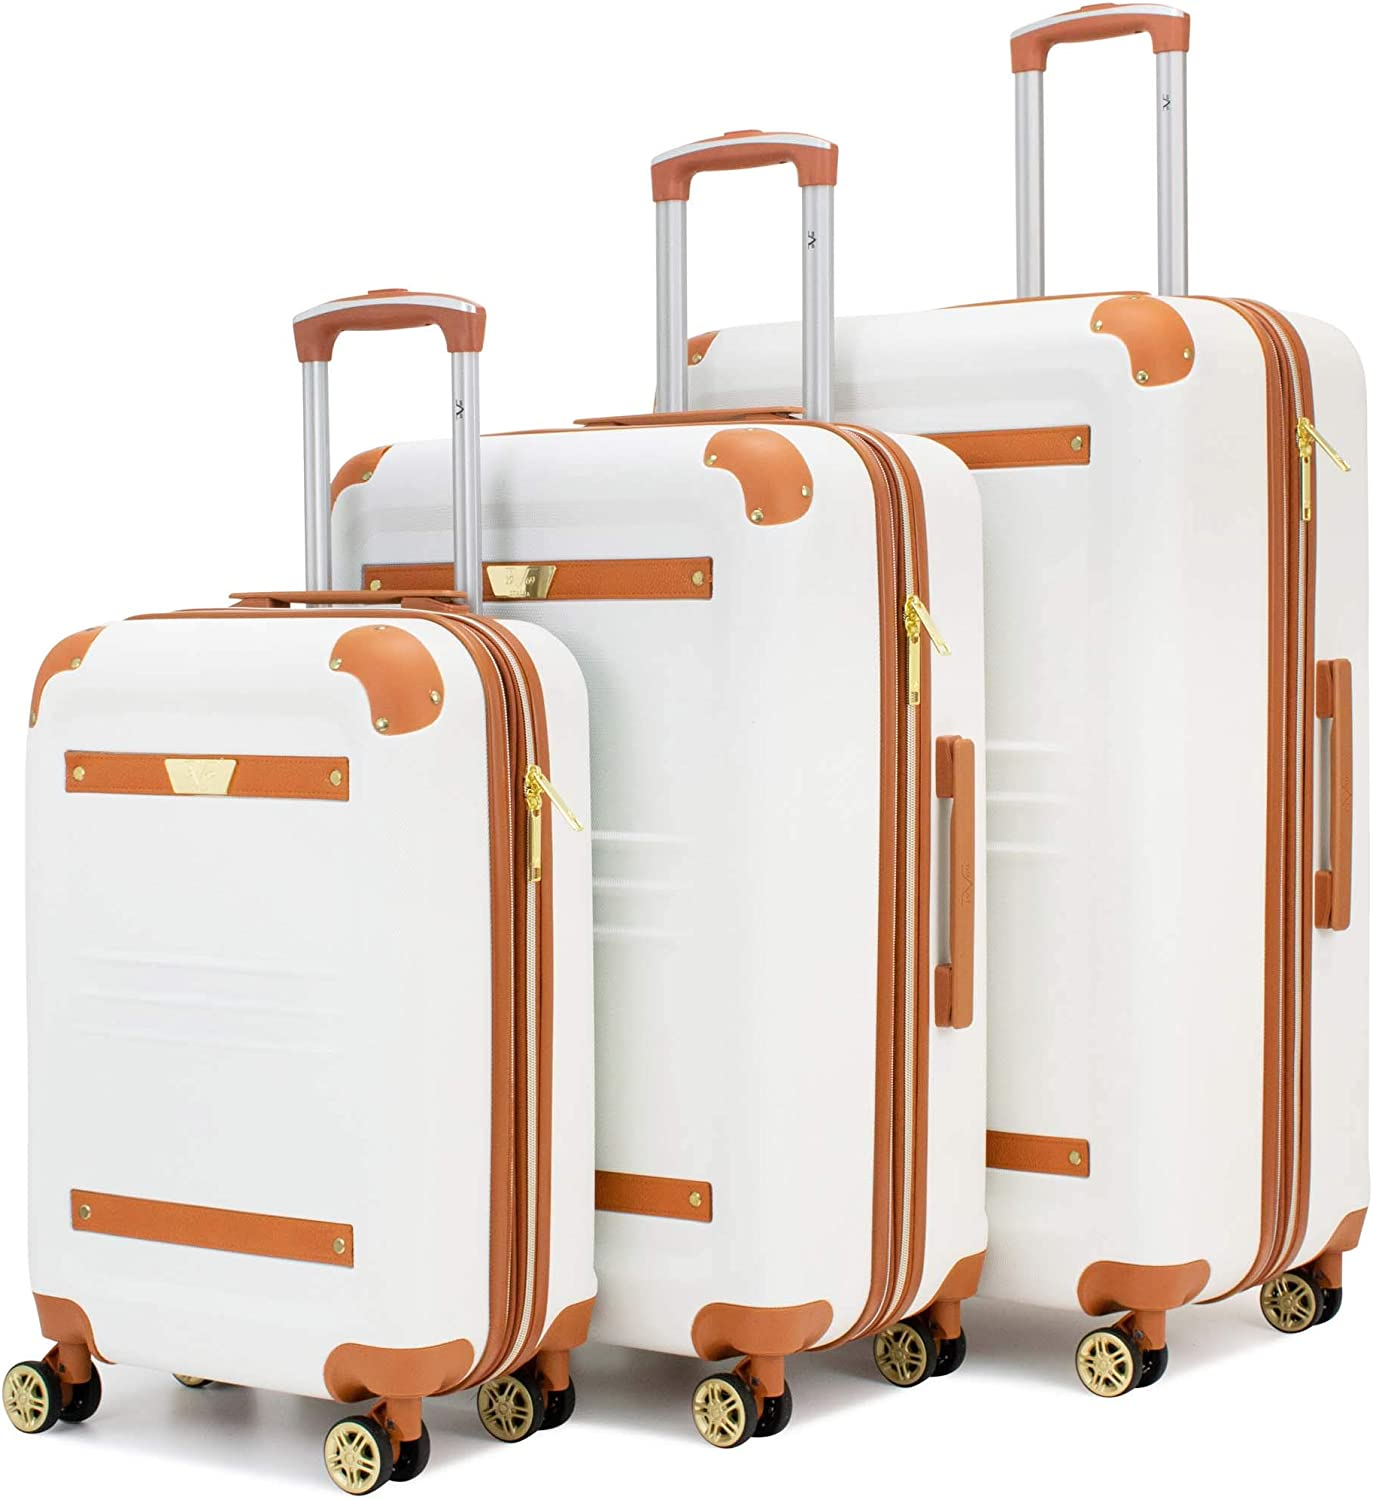 19V69 Italia Vintage 3 Piece Expandable Hard Spinner Luggage Set